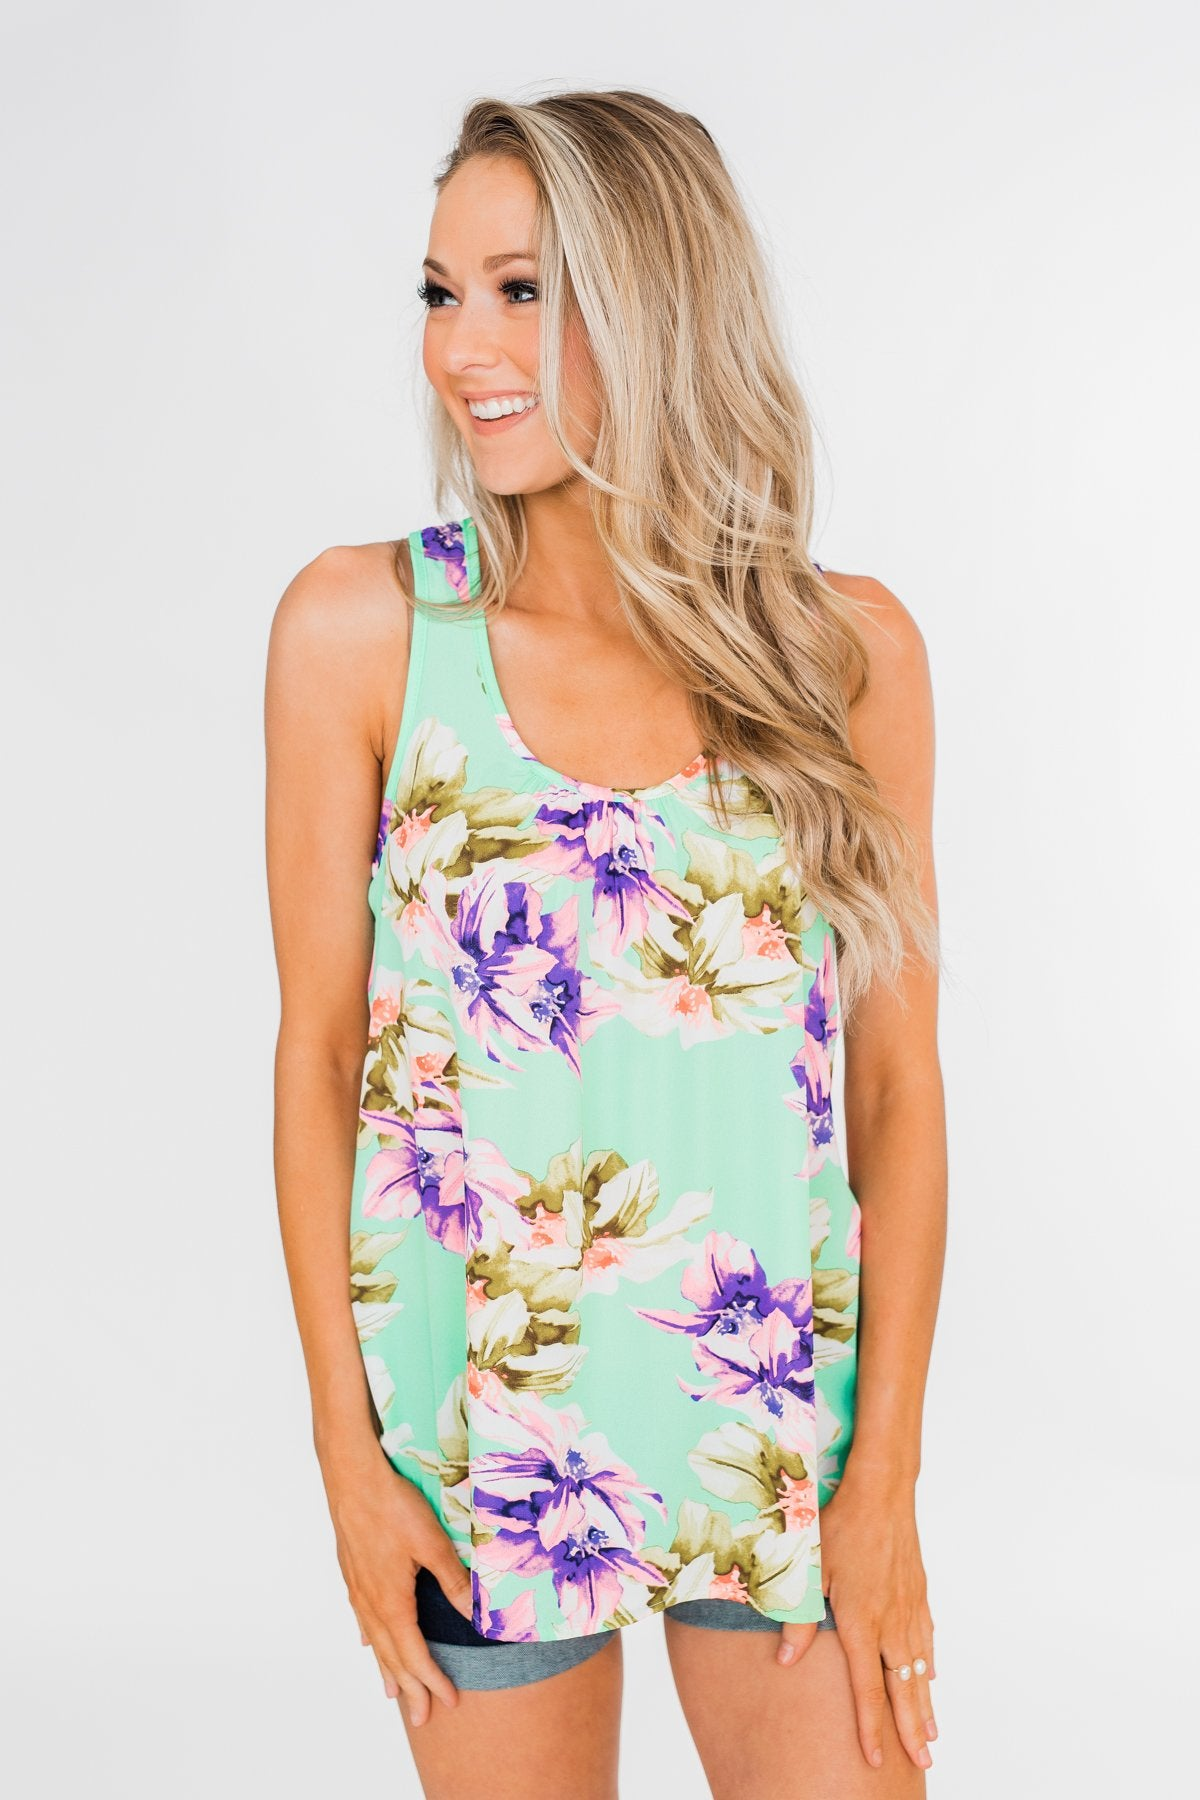 Another Day in Paradise Floral Tank Top- Bright Mint